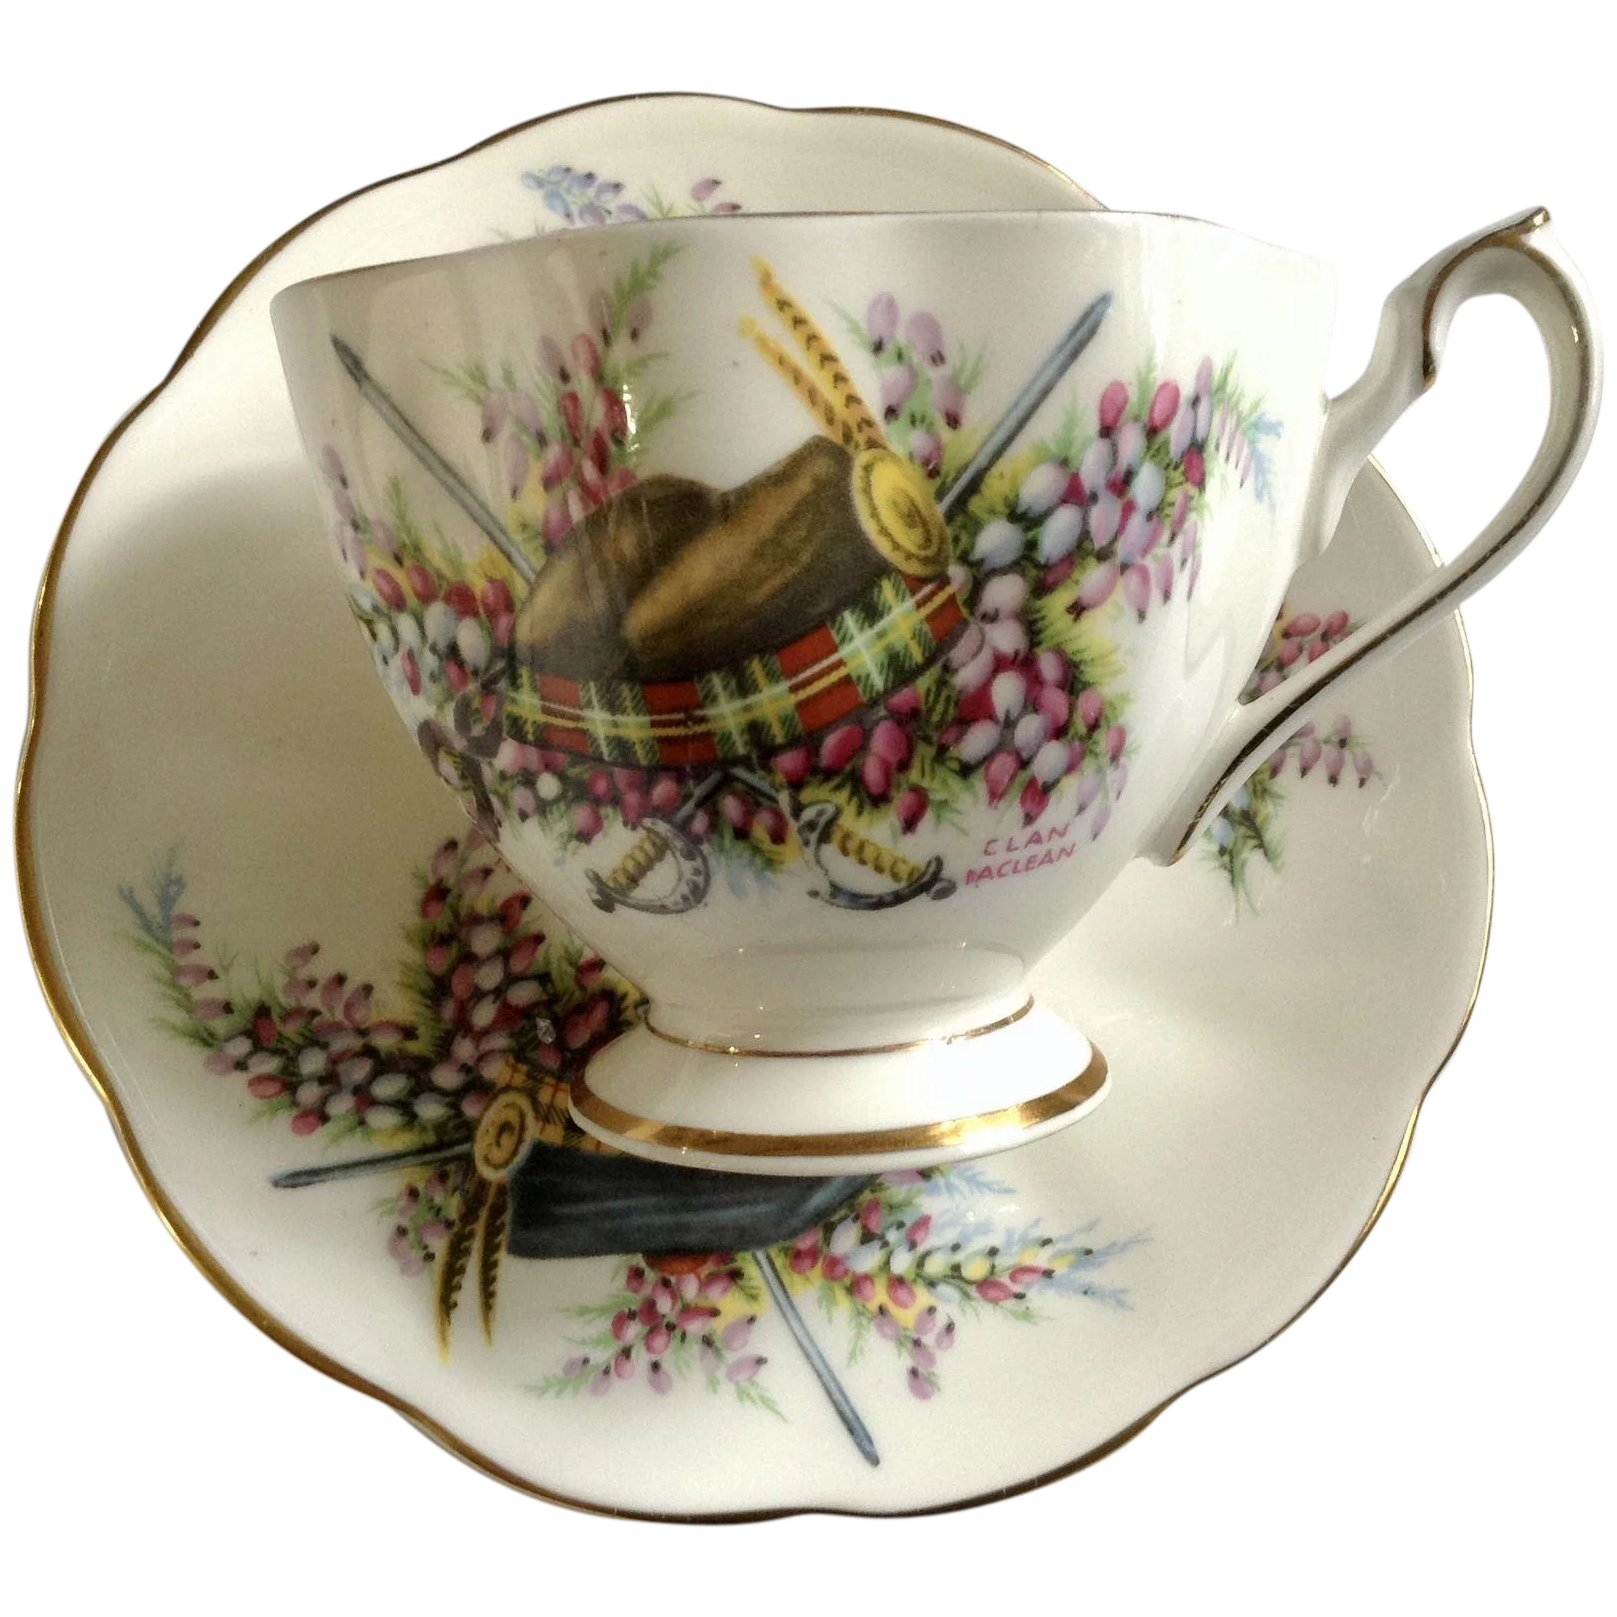 Glengarrys Queen Anne Footed Cup And Saucer England Gumgumfuninthesun Ruby Lane